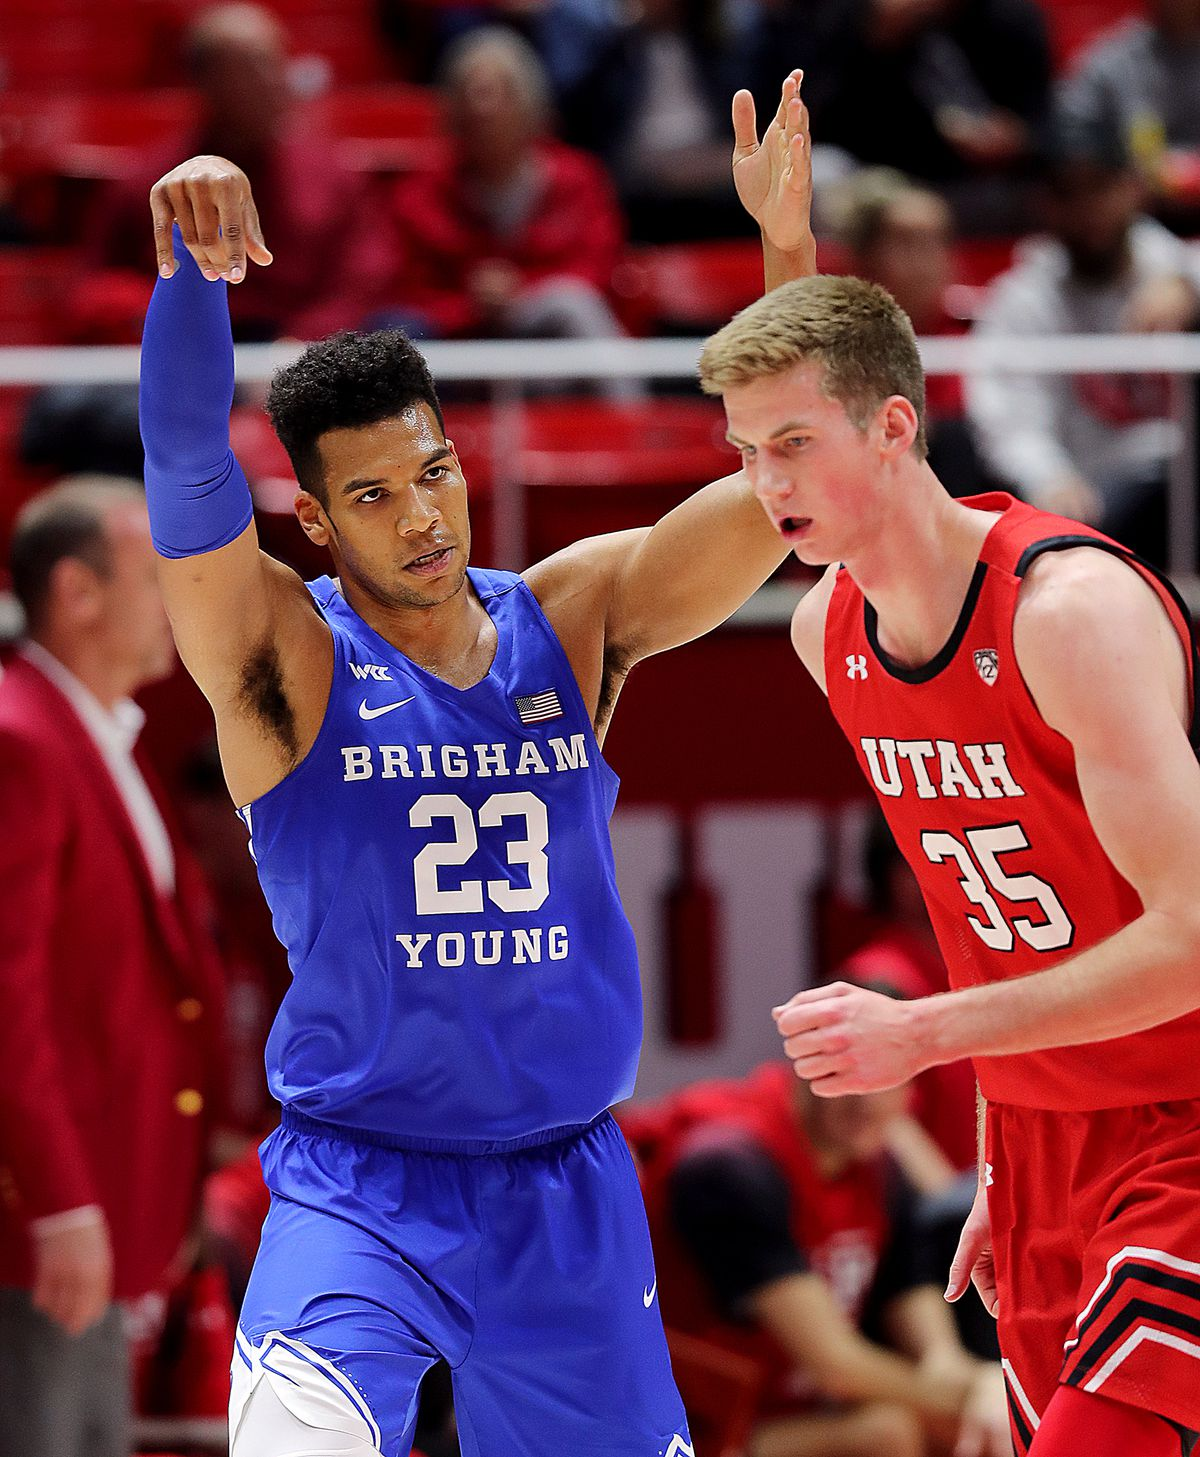 Brigham Young Cougars forward Yoeli Childs (23) reacts after hitting a shot as Utah and BYU play an NCAA basketball game at the Huntsman Center in Salt Lake City on Wednesday, Dec. 4, 2019.